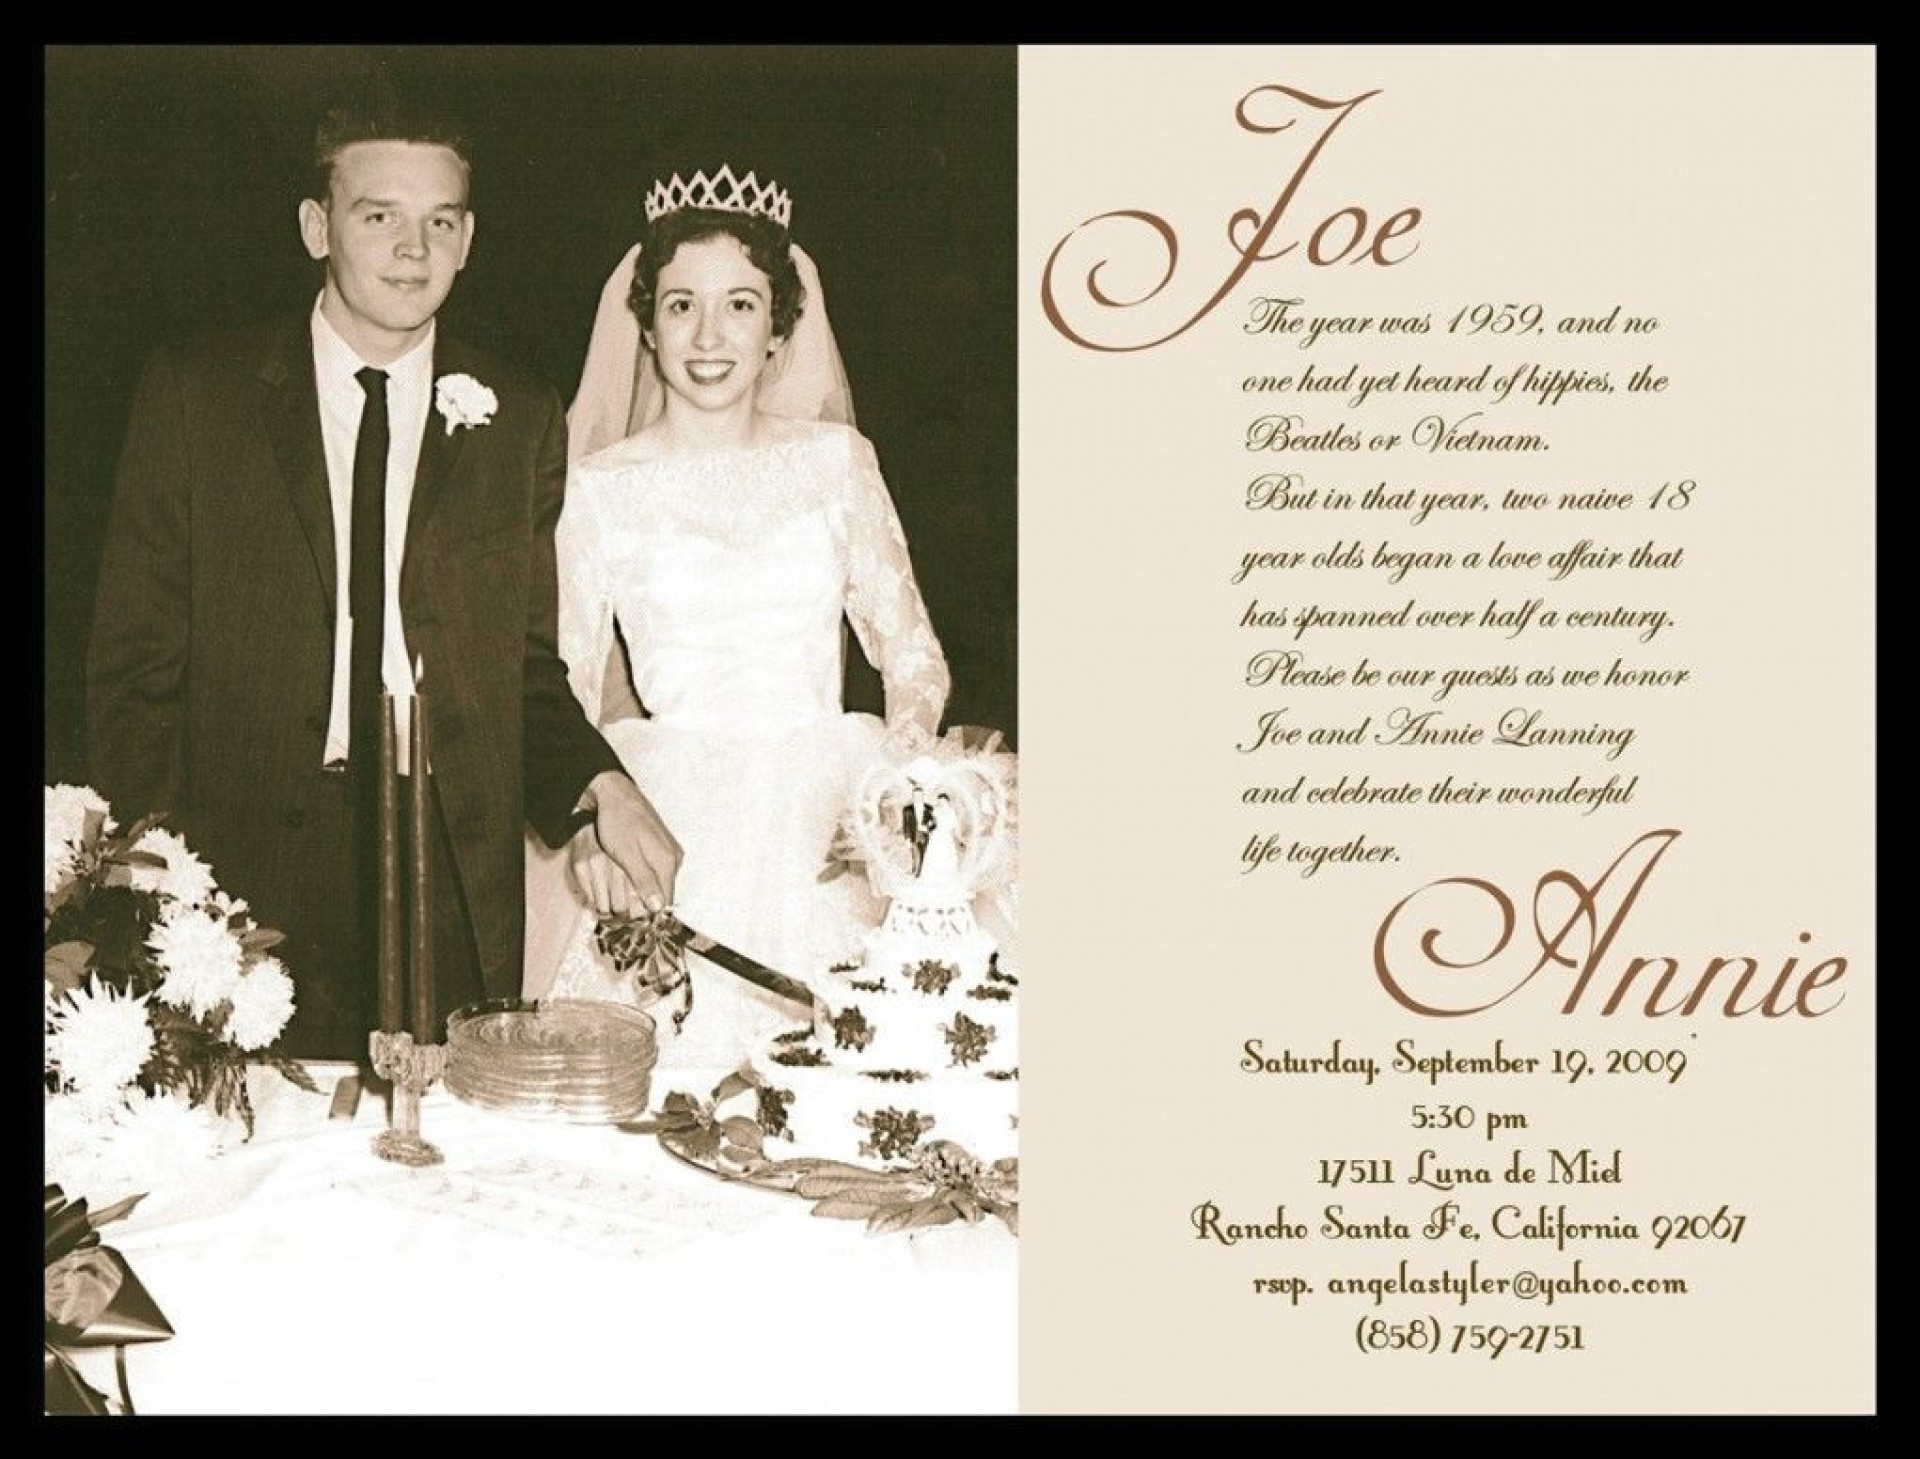 005 Remarkable Free 50th Anniversary Invitation Template For Word Concept 1920